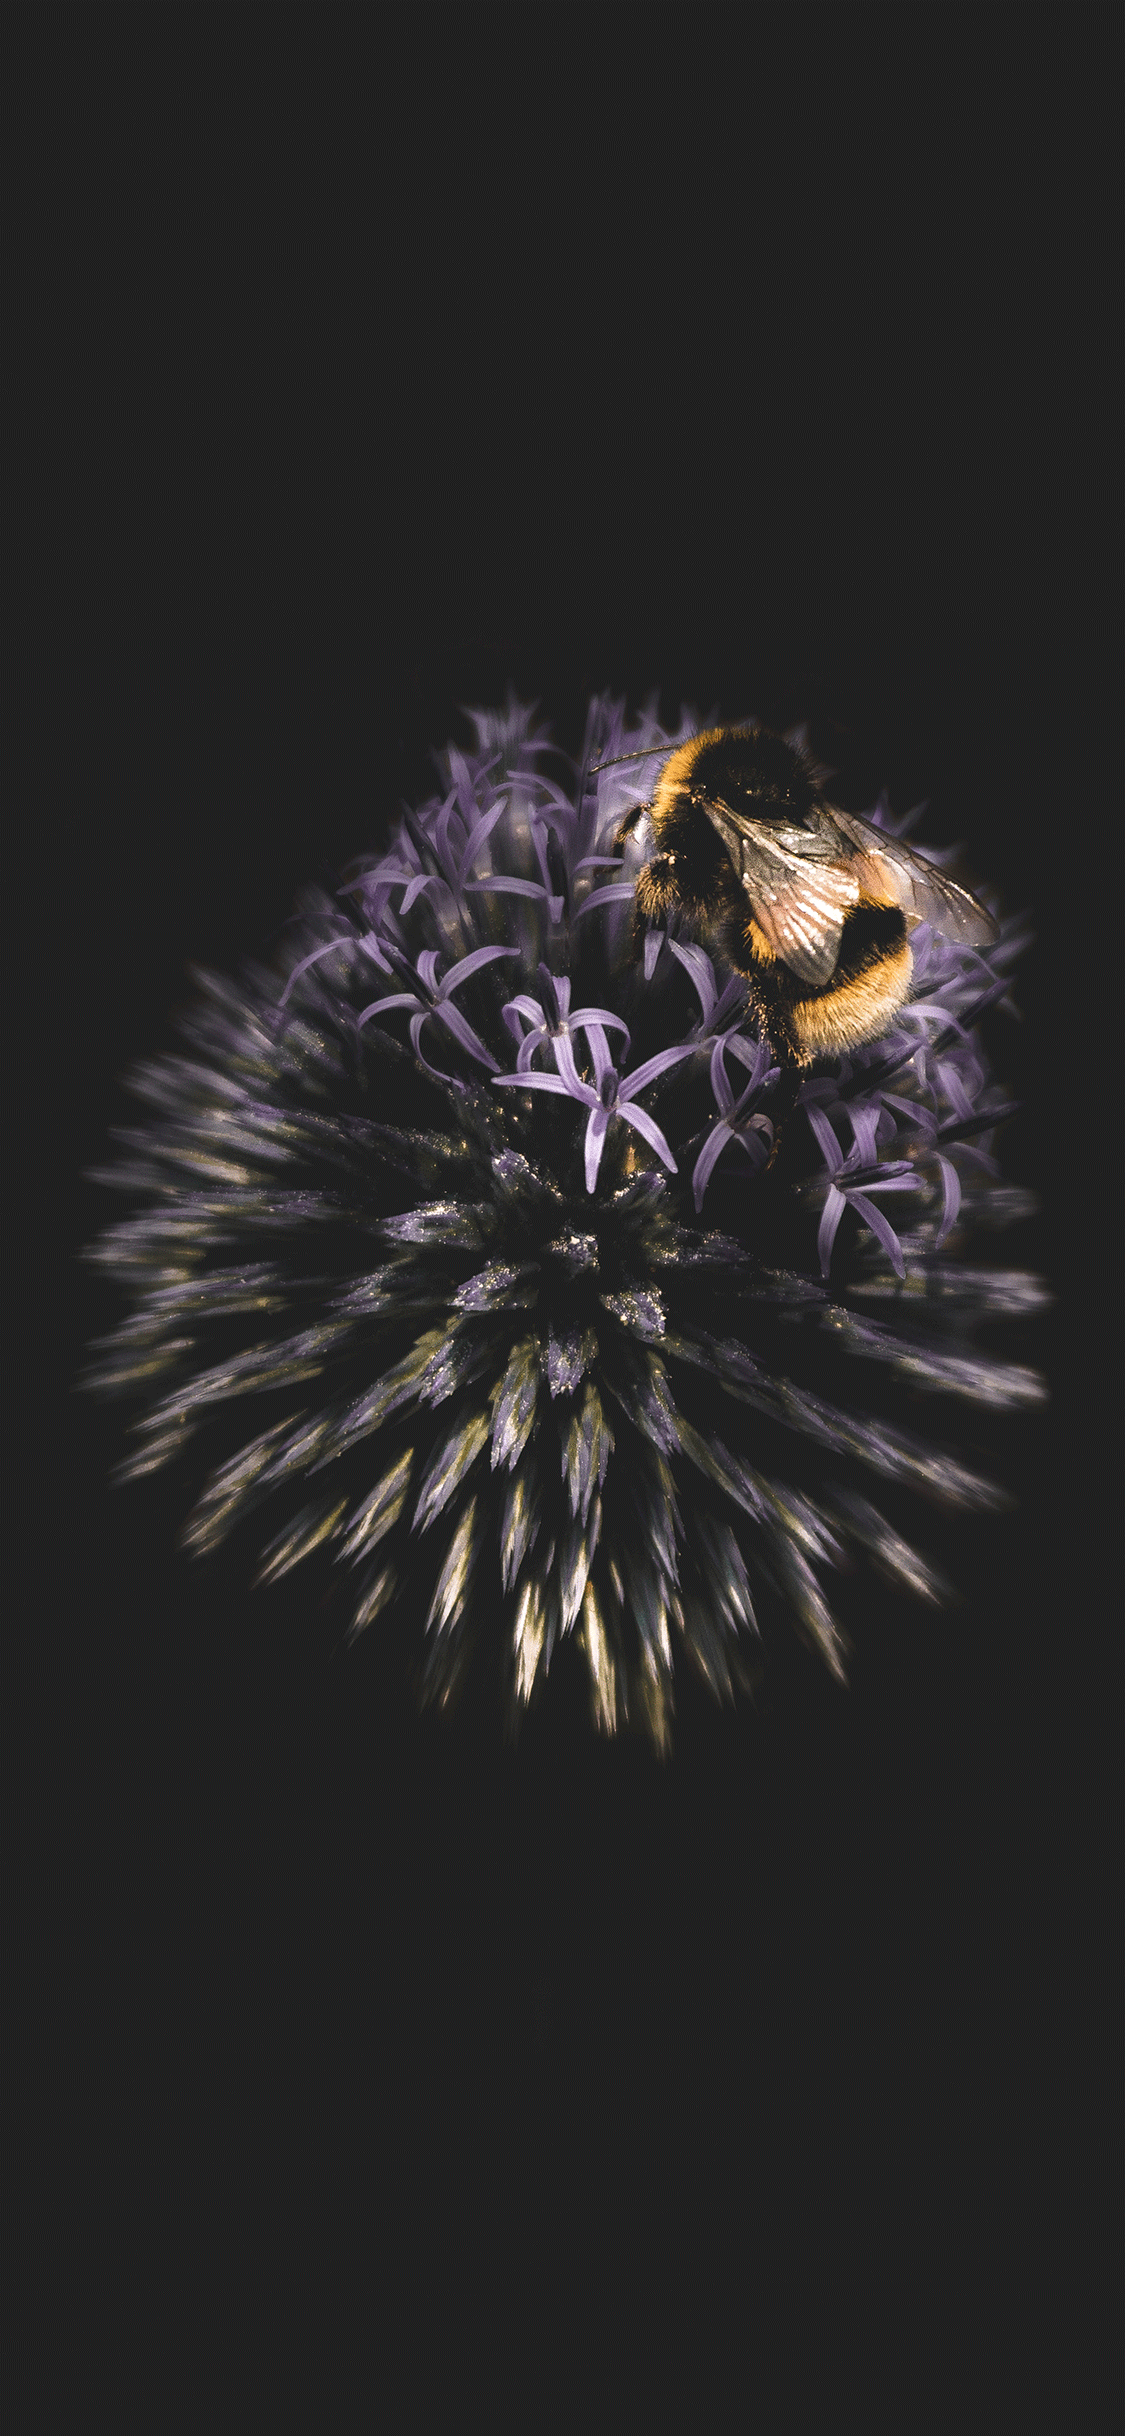 iPhone wallpaper dark bee Black Background